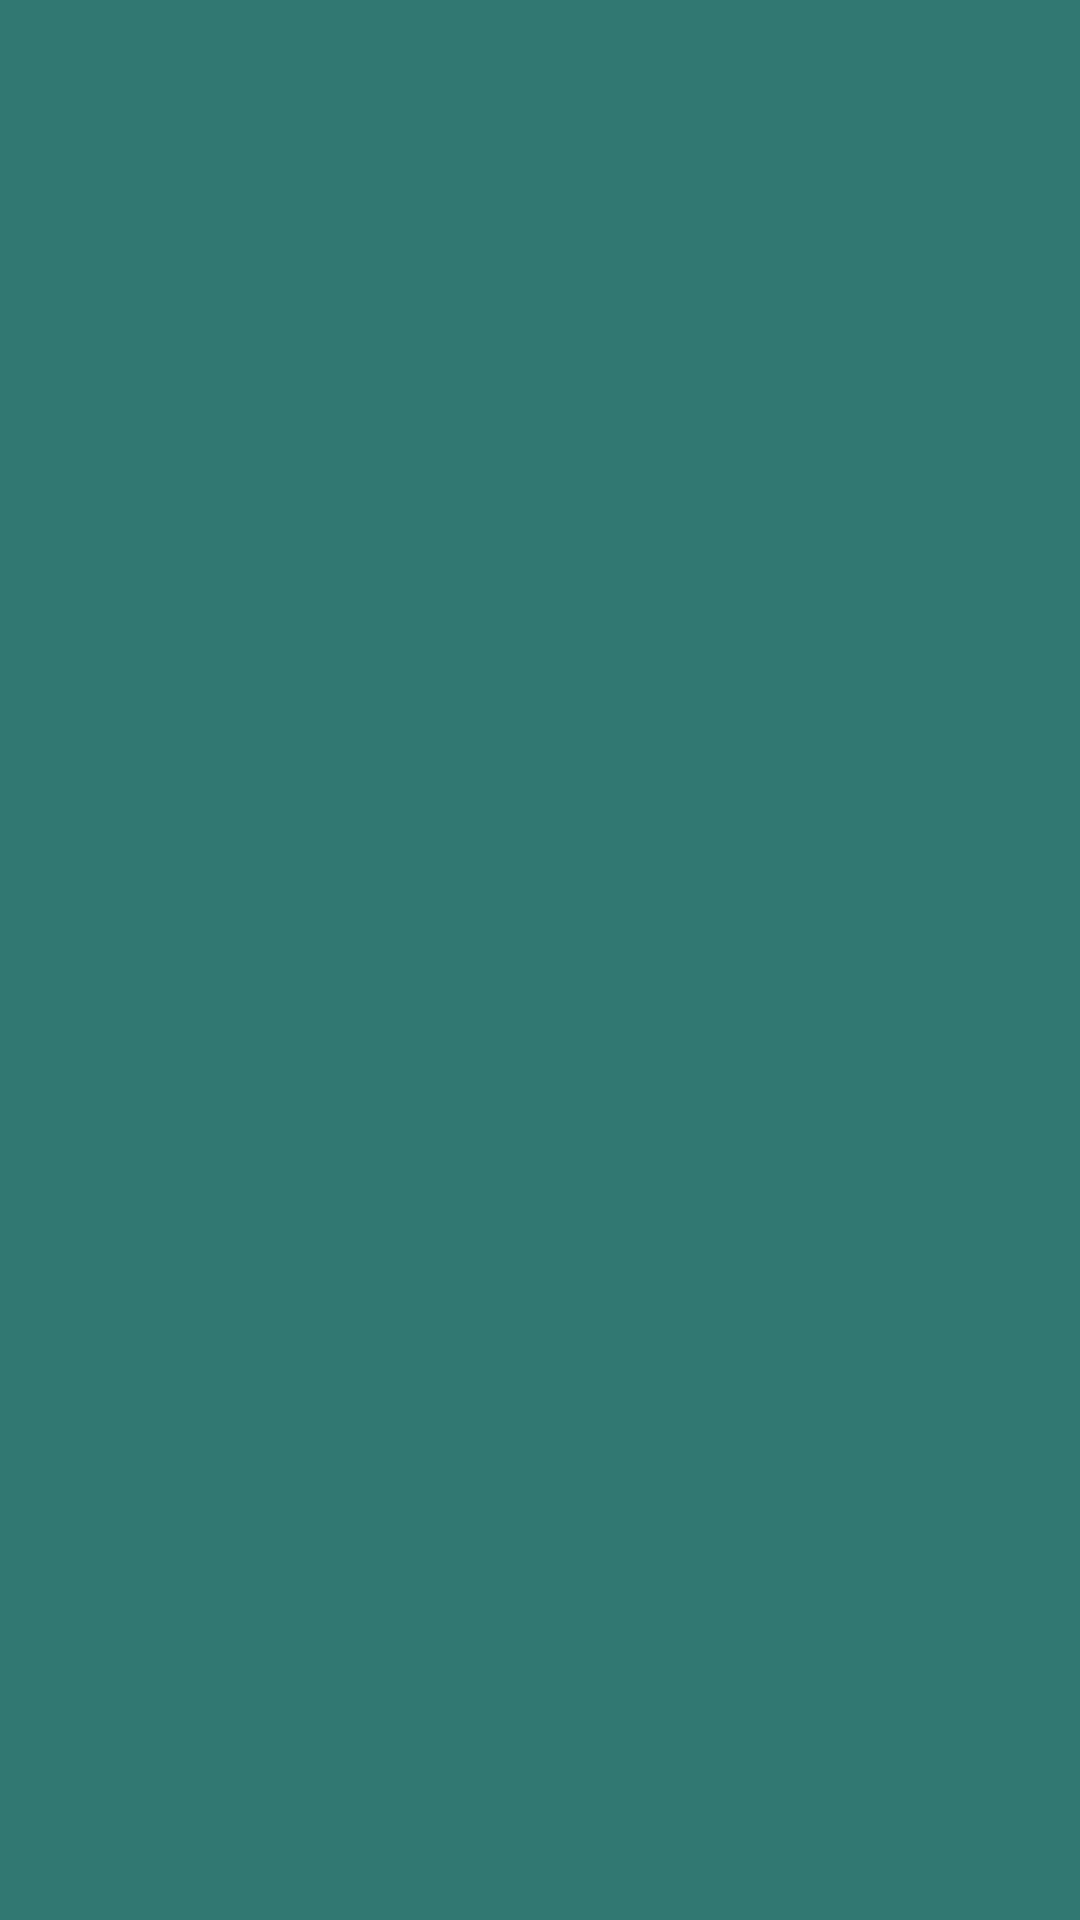 1080x1920 Myrtle Green Solid Color Background